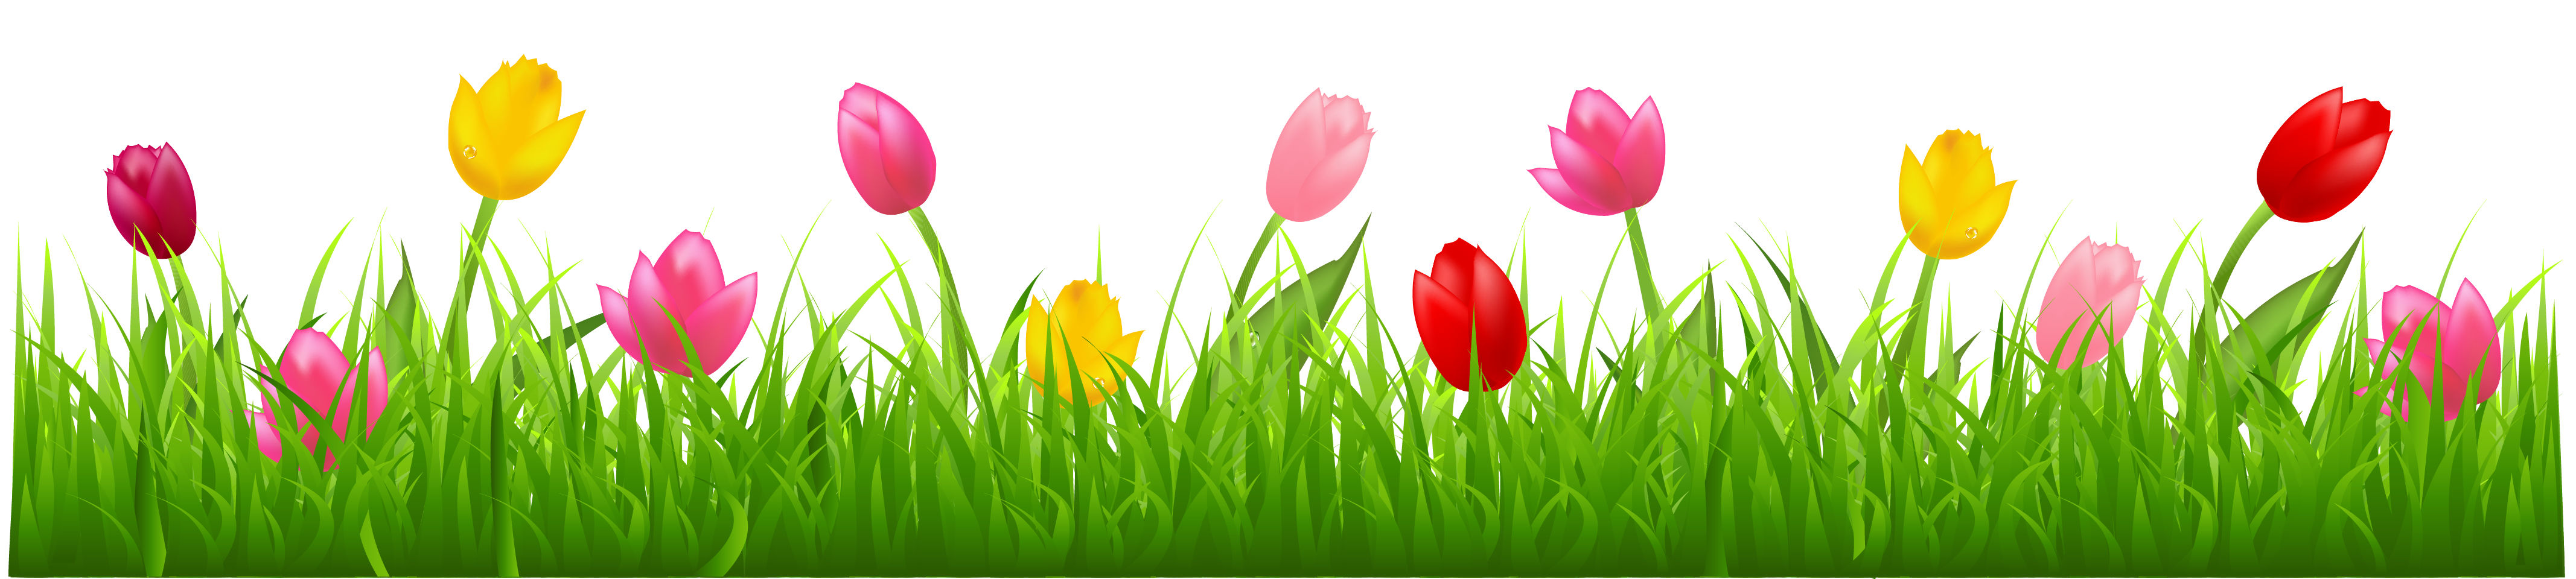 Flower and grass clipart clipart black and white stock Grass with Colorful Tulips PNG Clipart | Spring | Pinterest ... clipart black and white stock